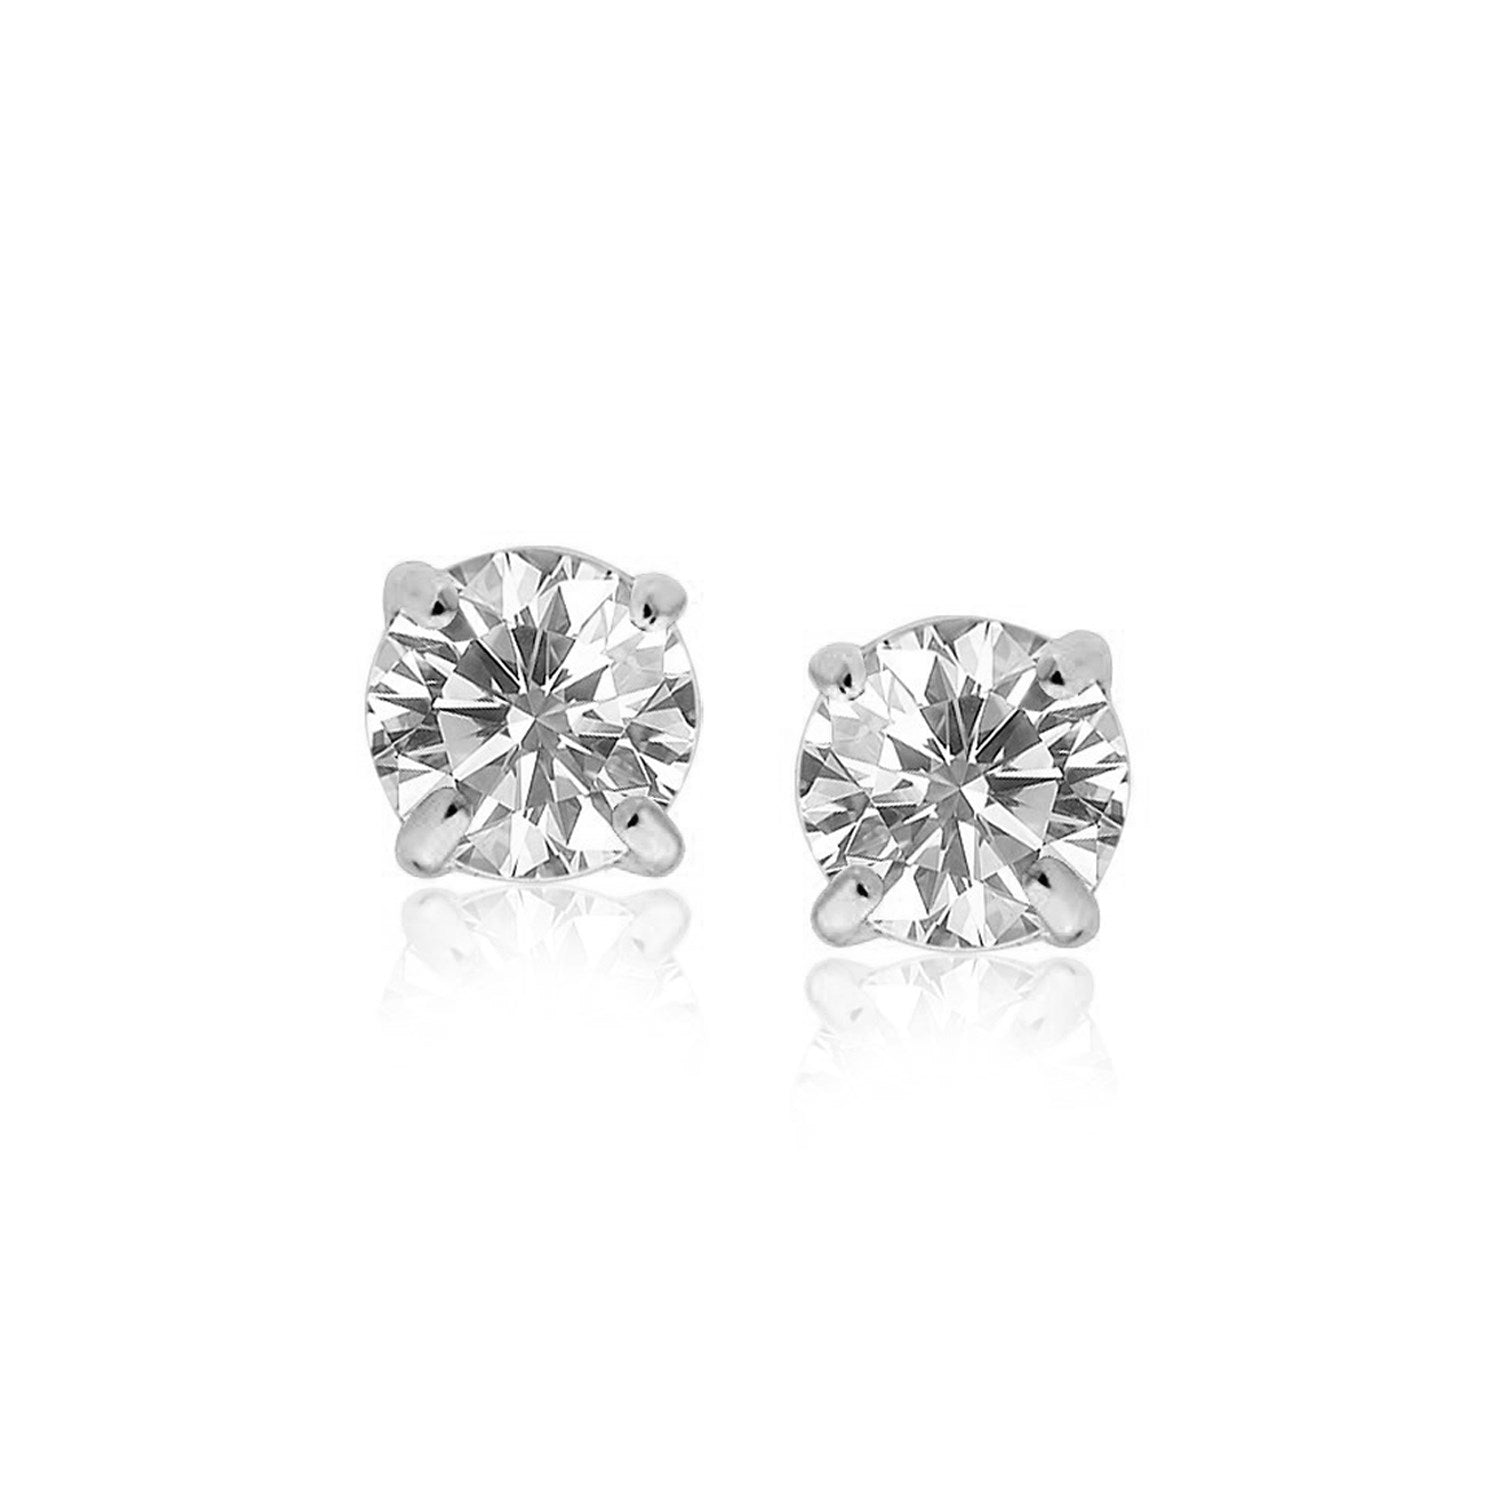 Unique Modern Paris Style Sterling Silver Stud Earrings with White Hue Faceted Cubic Zirconia